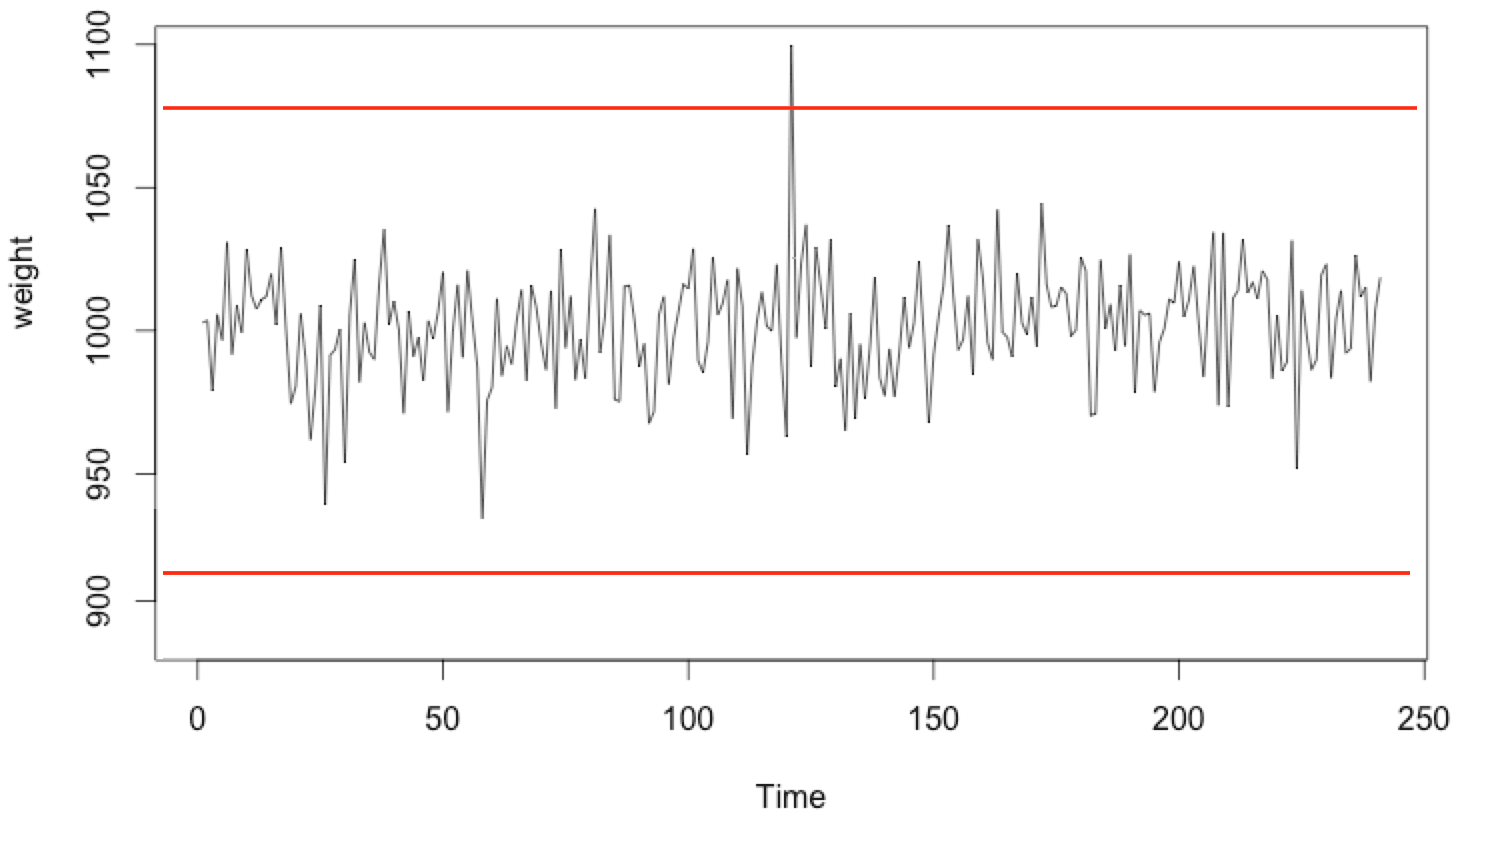 Anomaly Detection on CPU waveform using K-Means